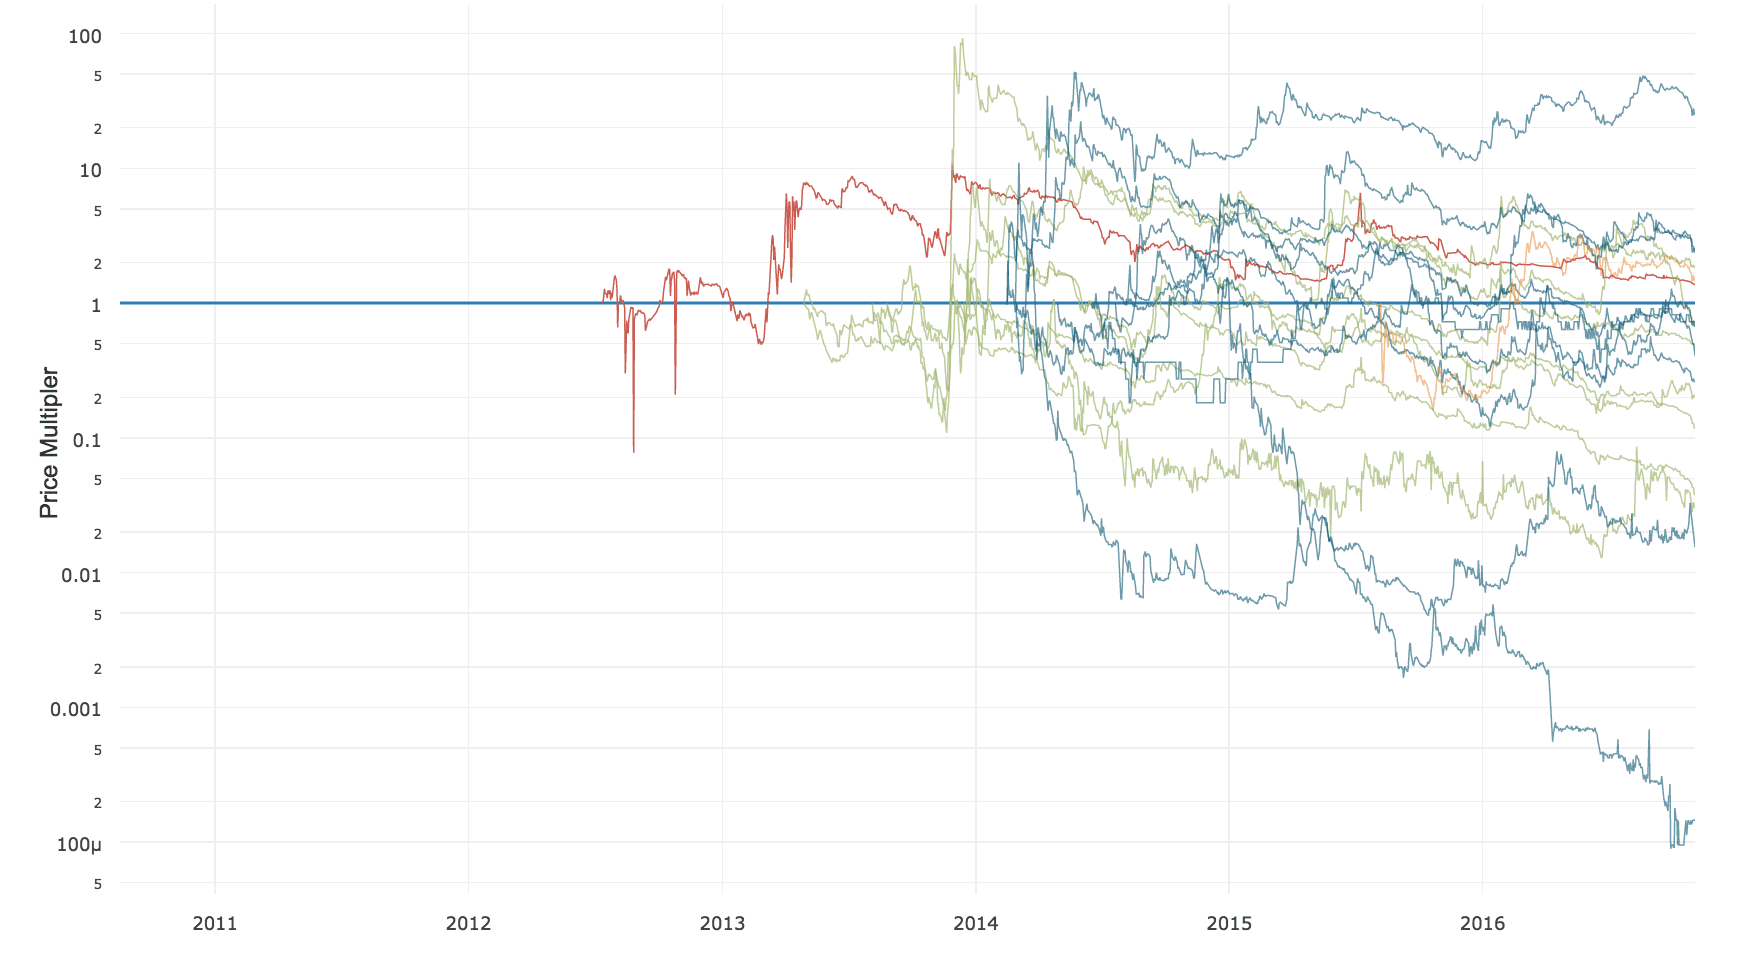 Altcoin price performance vs bitcoin over time